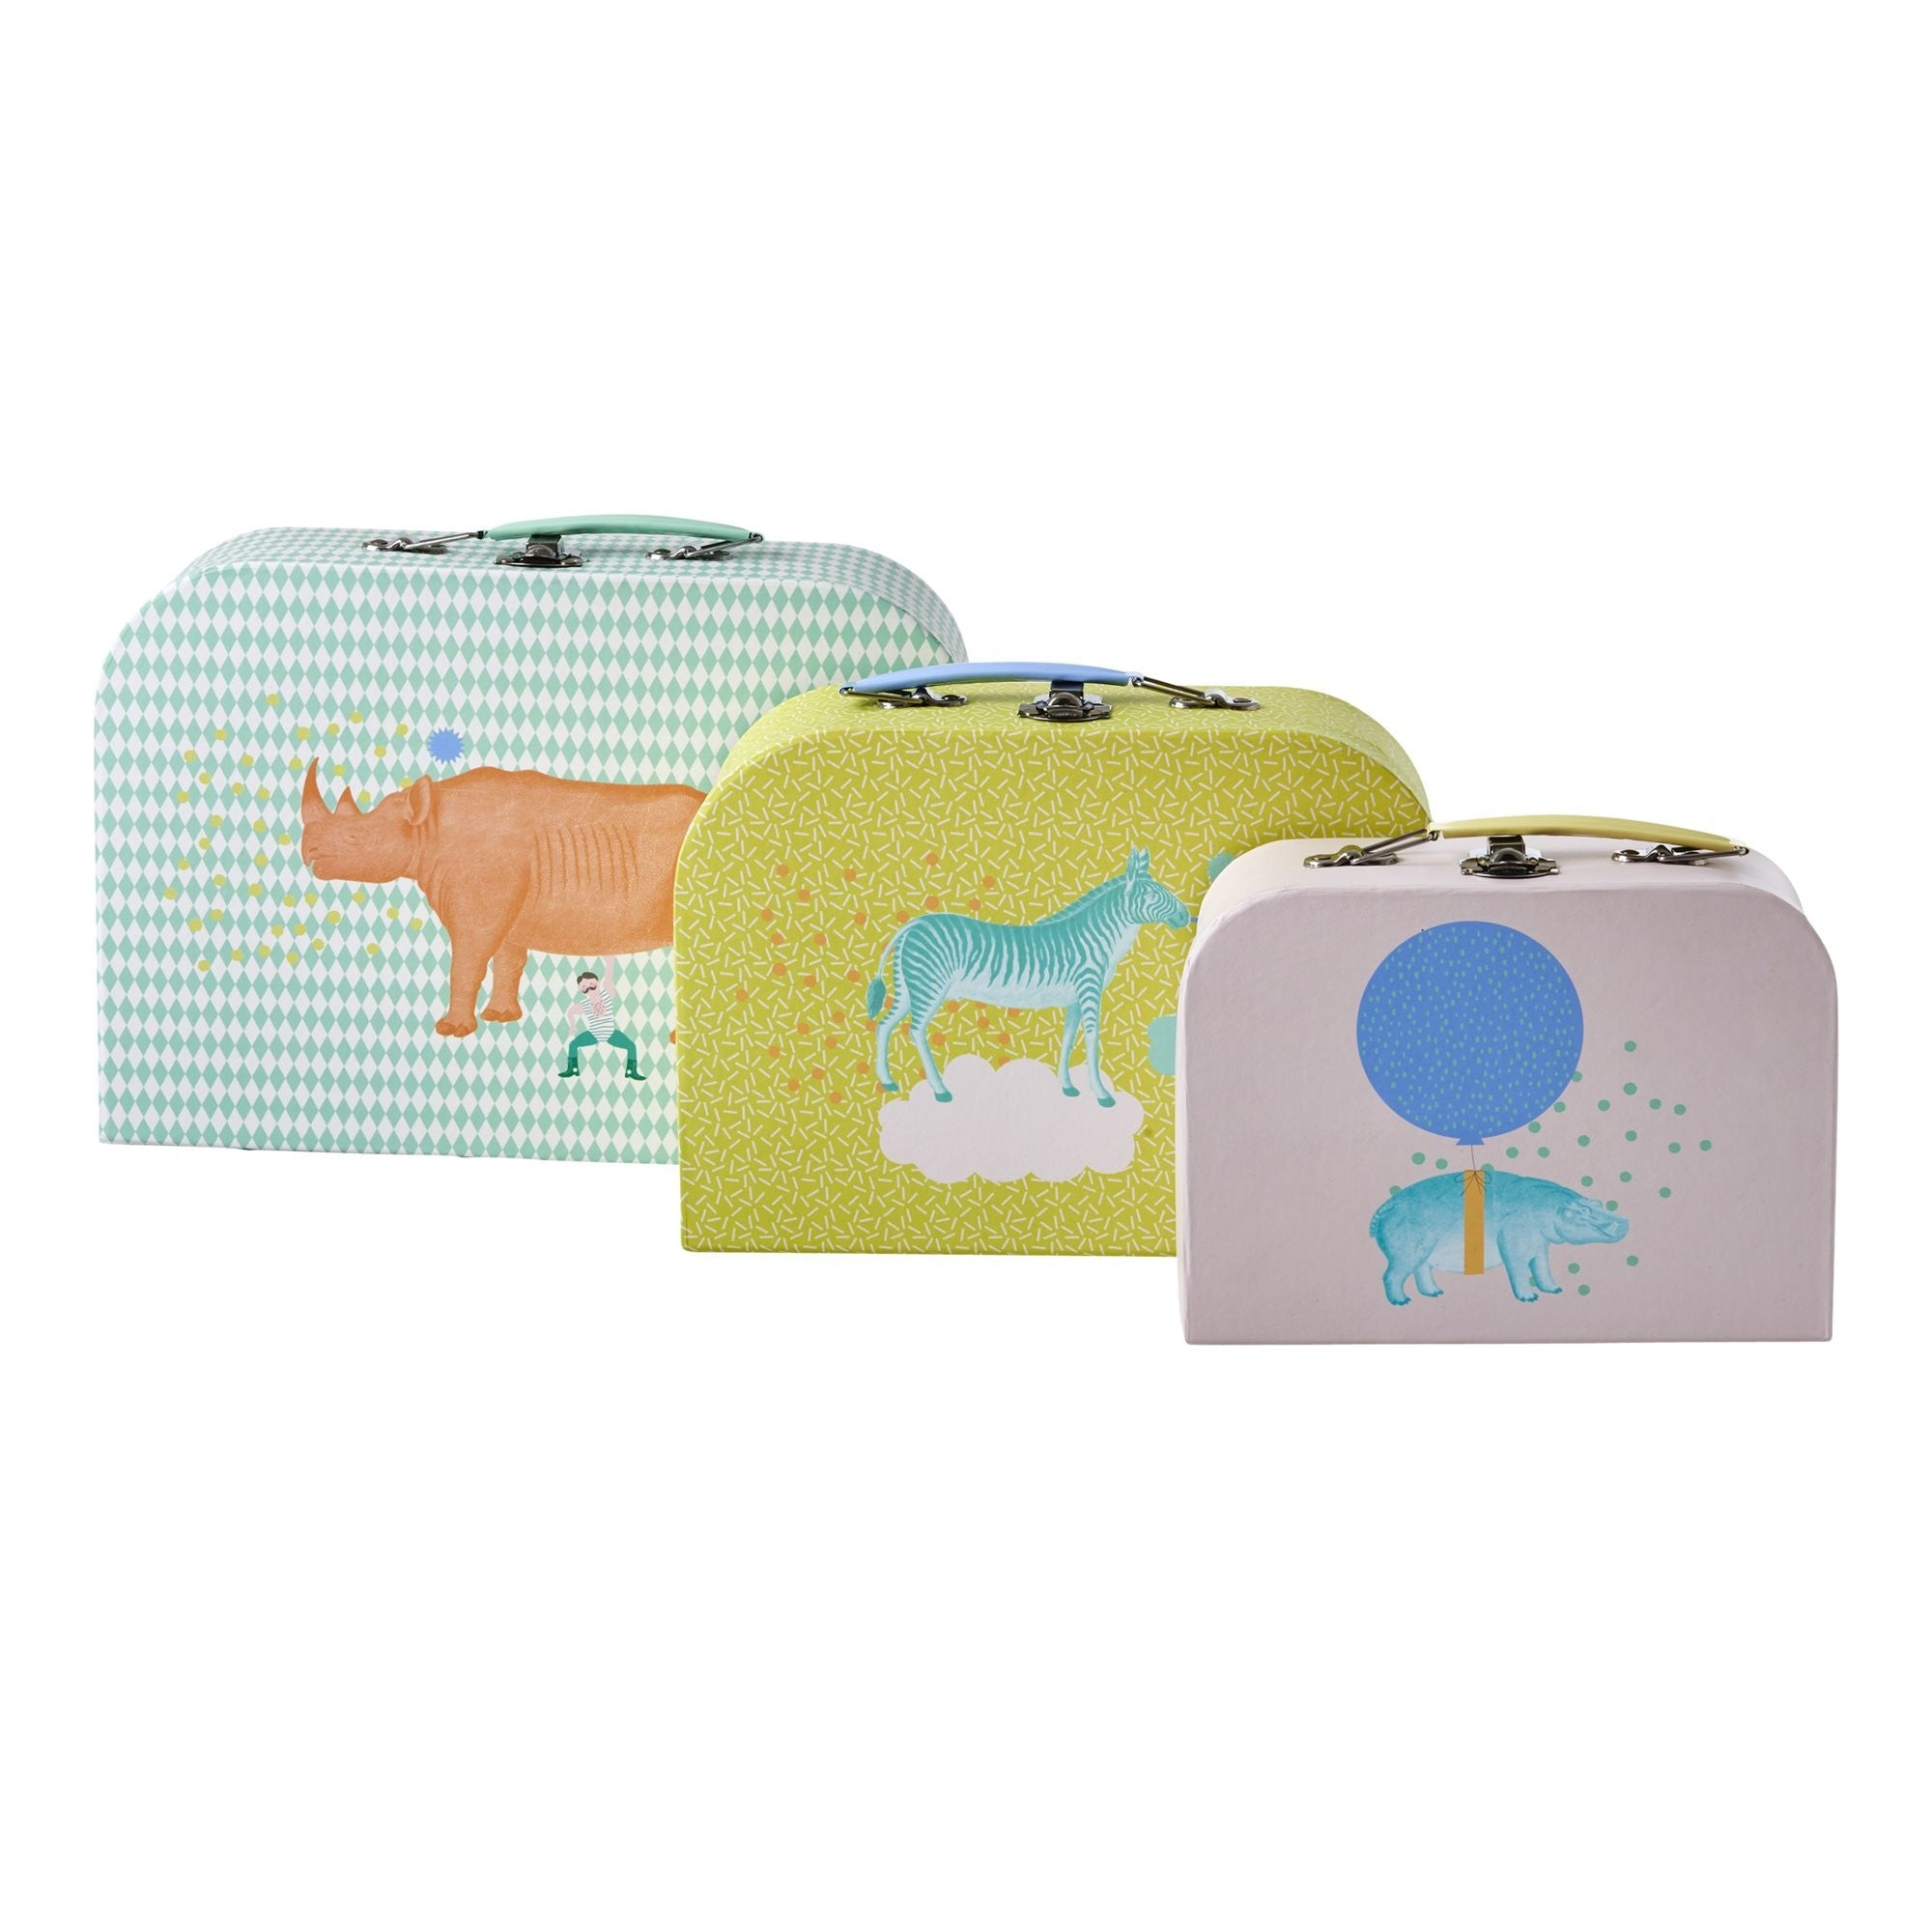 Rice DK | Cardboard Suitcase Set of 3 in Assorted Animal Prints